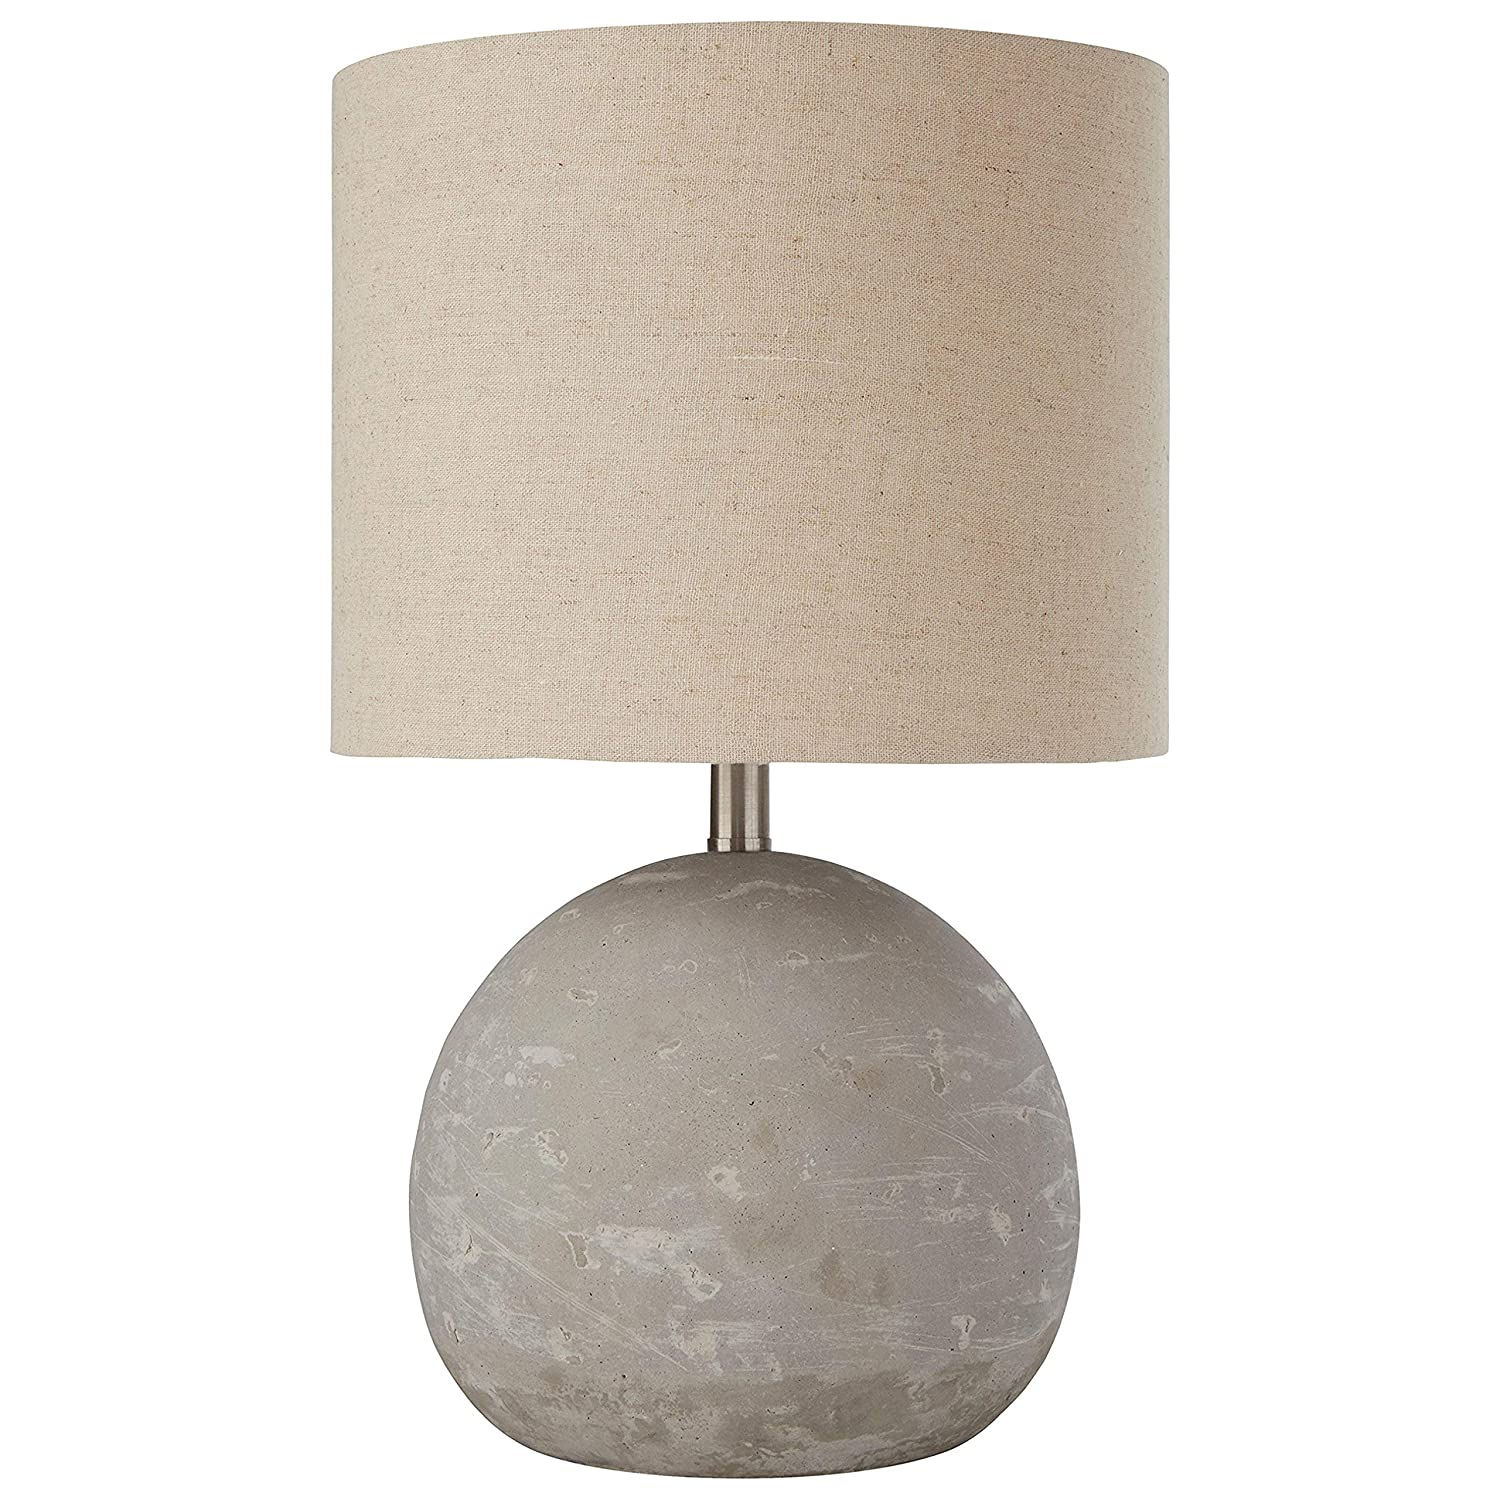 "Stone & Beam Industrial Concrete Table Lamp, 16""H, With Bulb, Brown Shade"